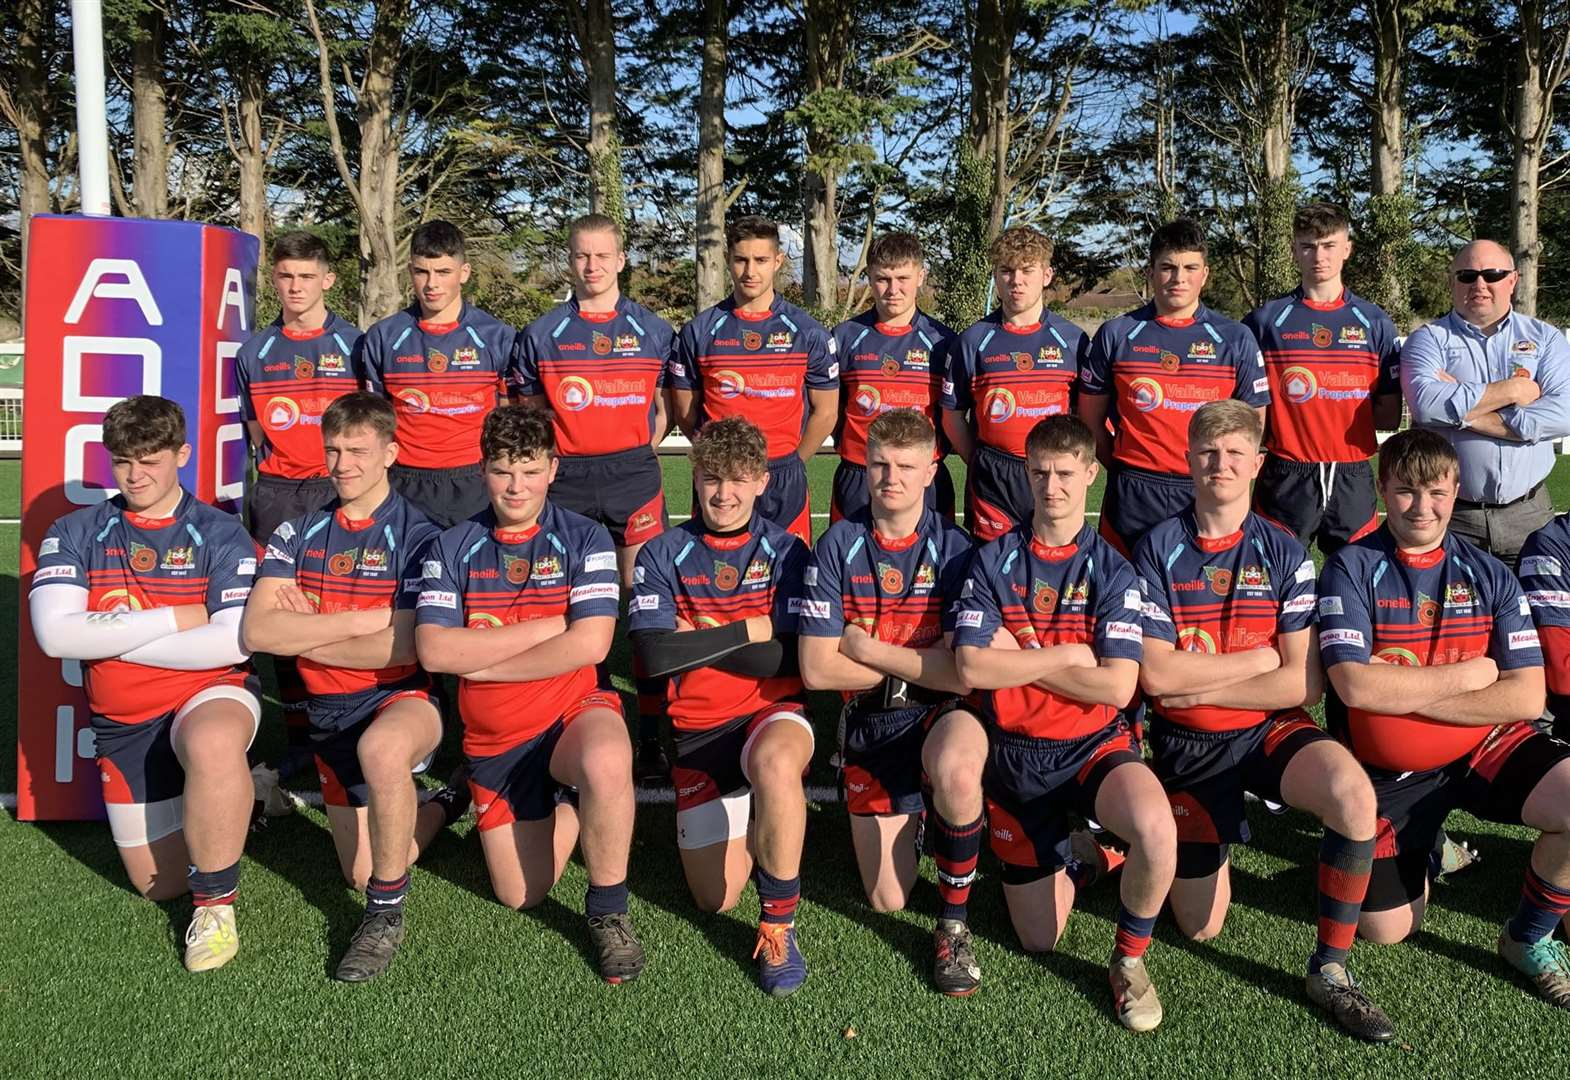 Rugby: Wisbech Colts given harsh national league lesson